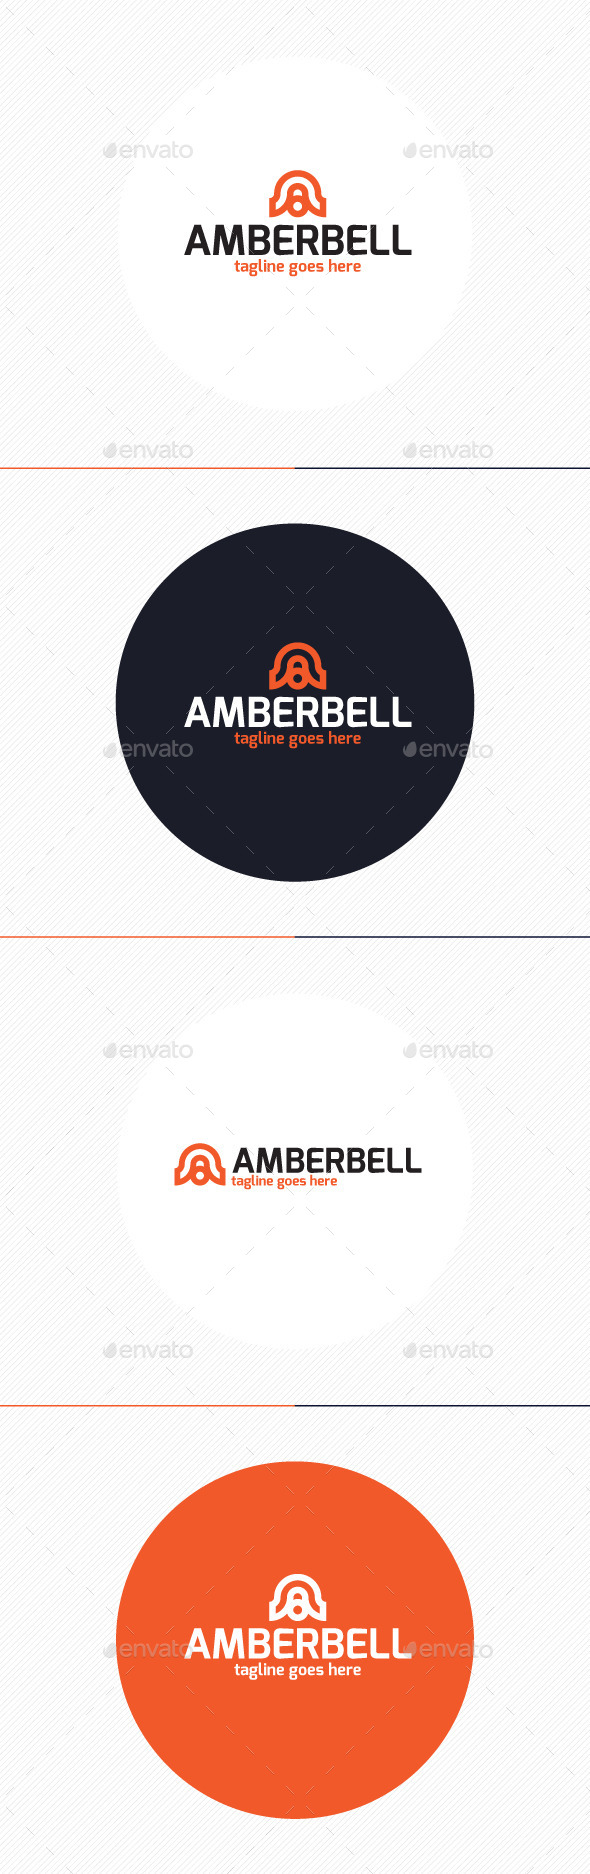 GraphicRiver Amber Bell Logo Letter A 9877164